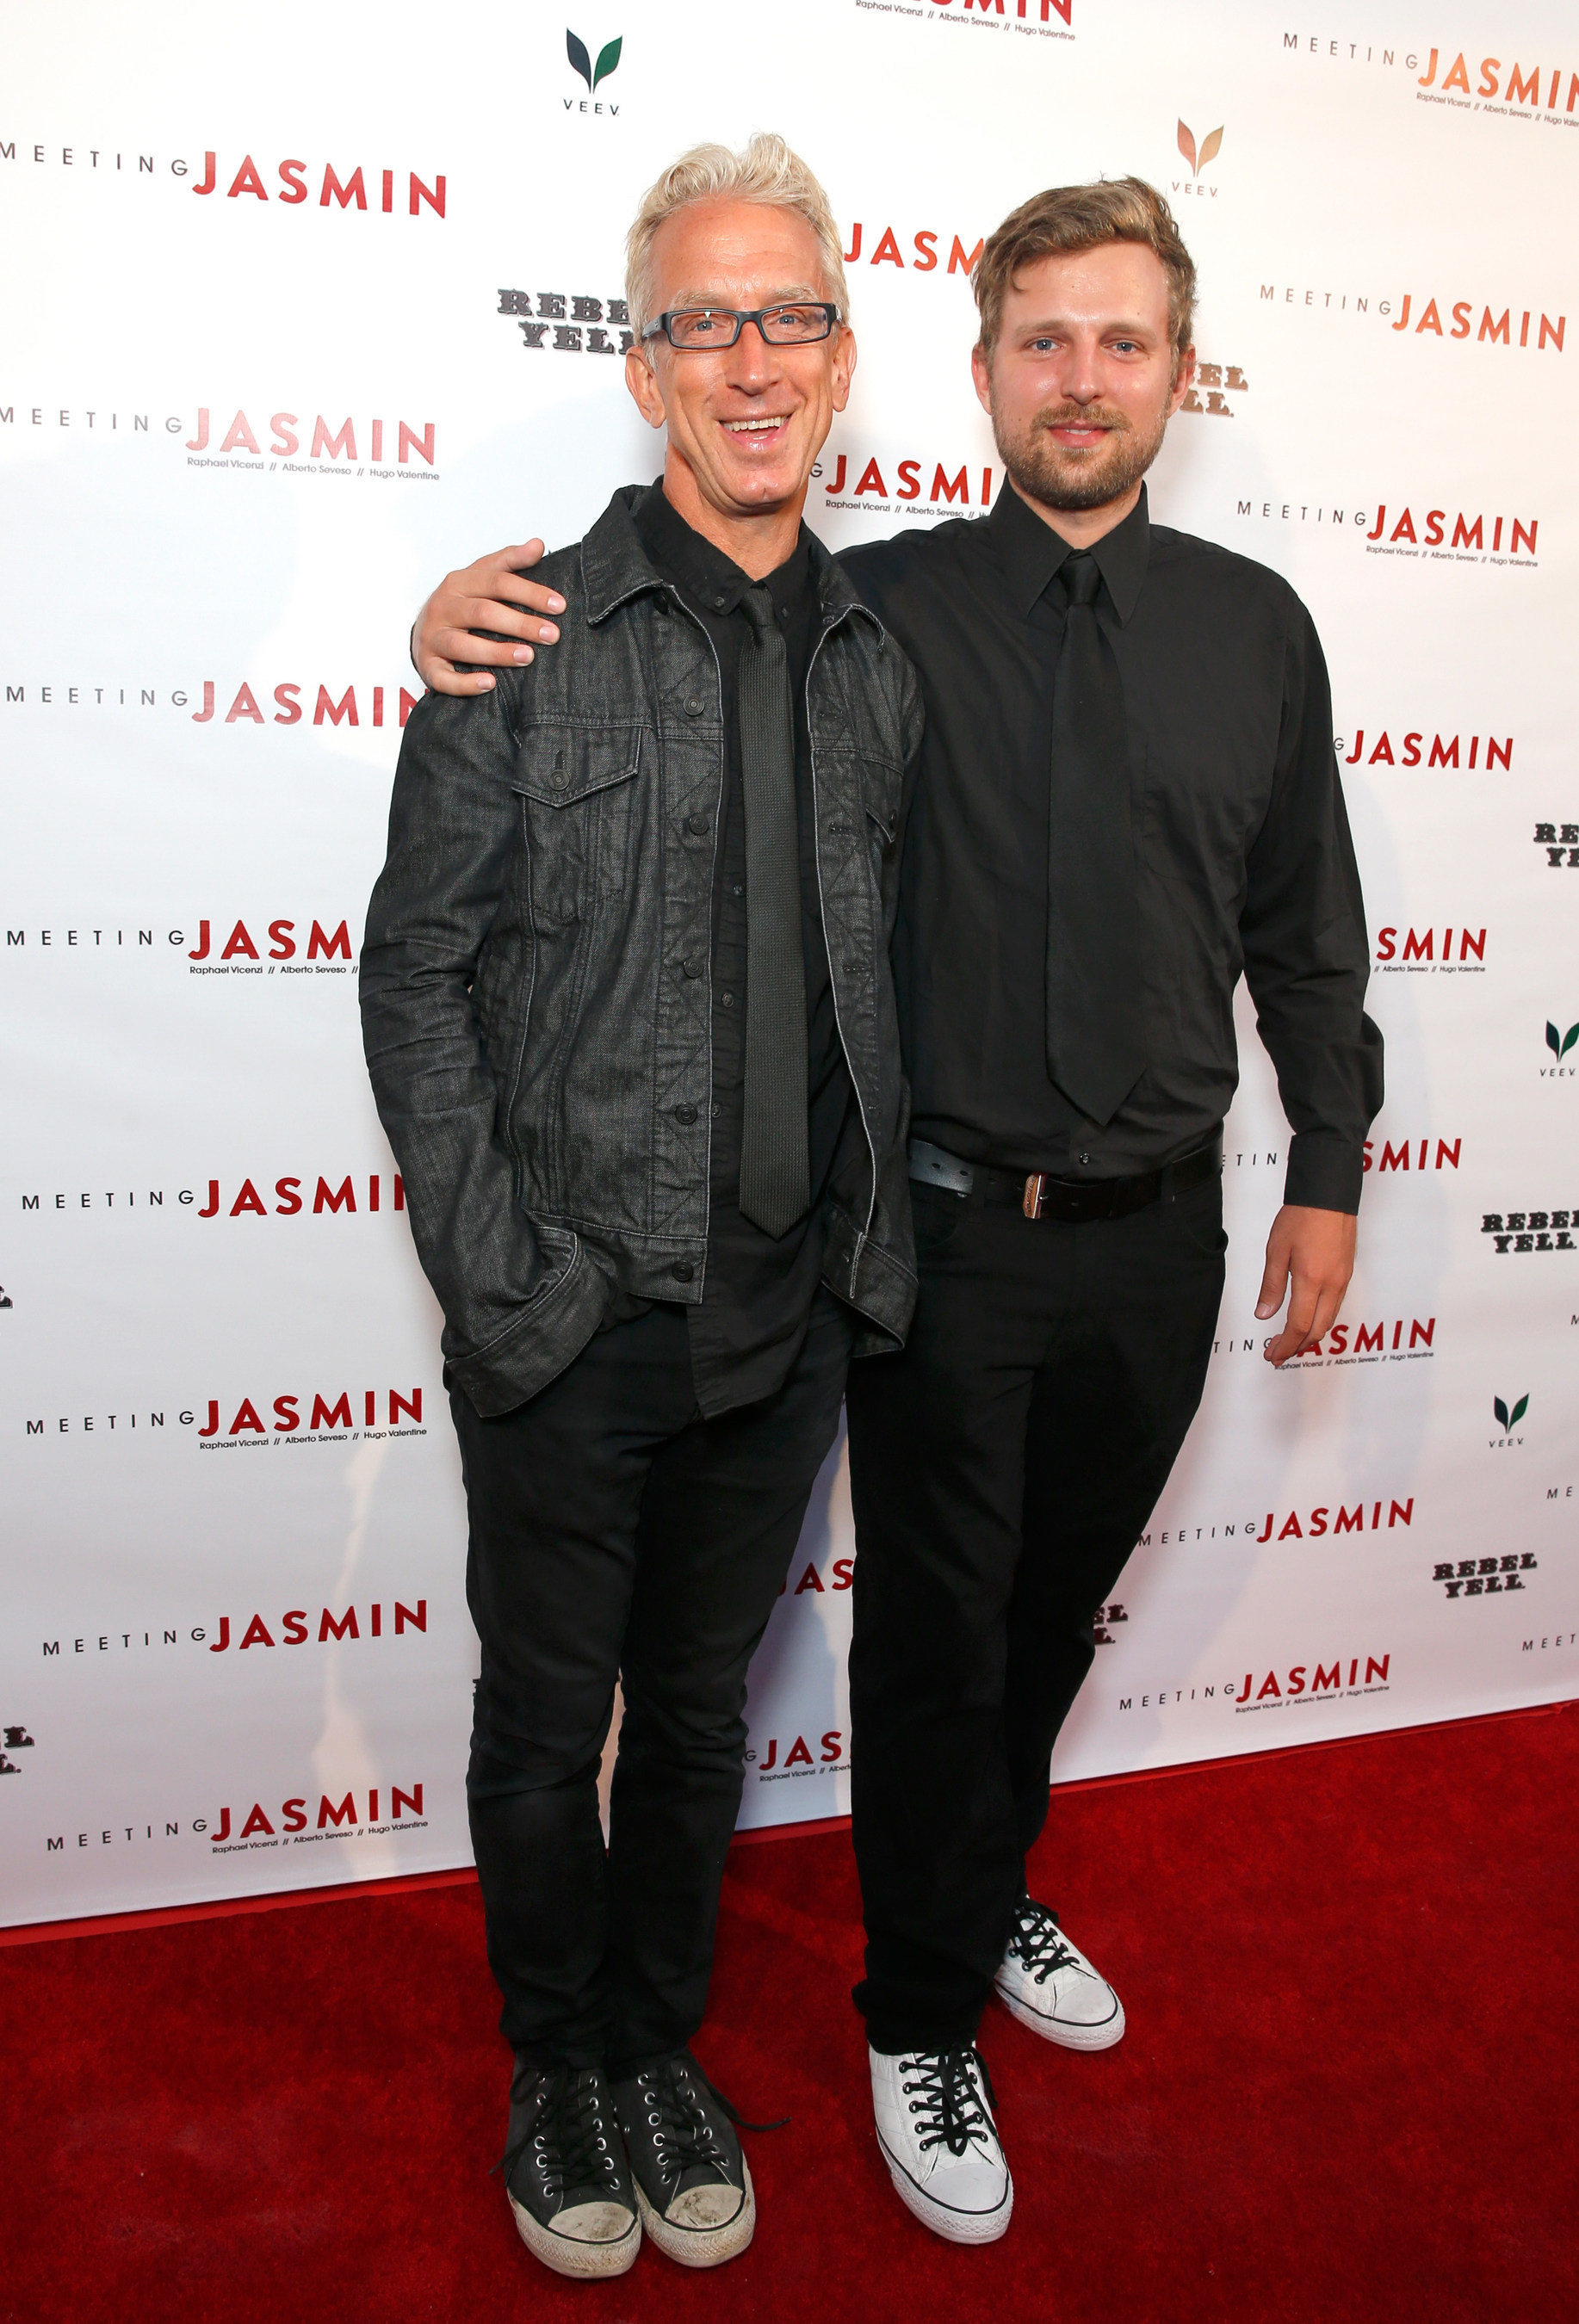 Actor Andy Dick and son, Lucas Dick, walked the red carpet together while attending the Meeting JASMIN fine art exhibition in Los Angeles, CA.